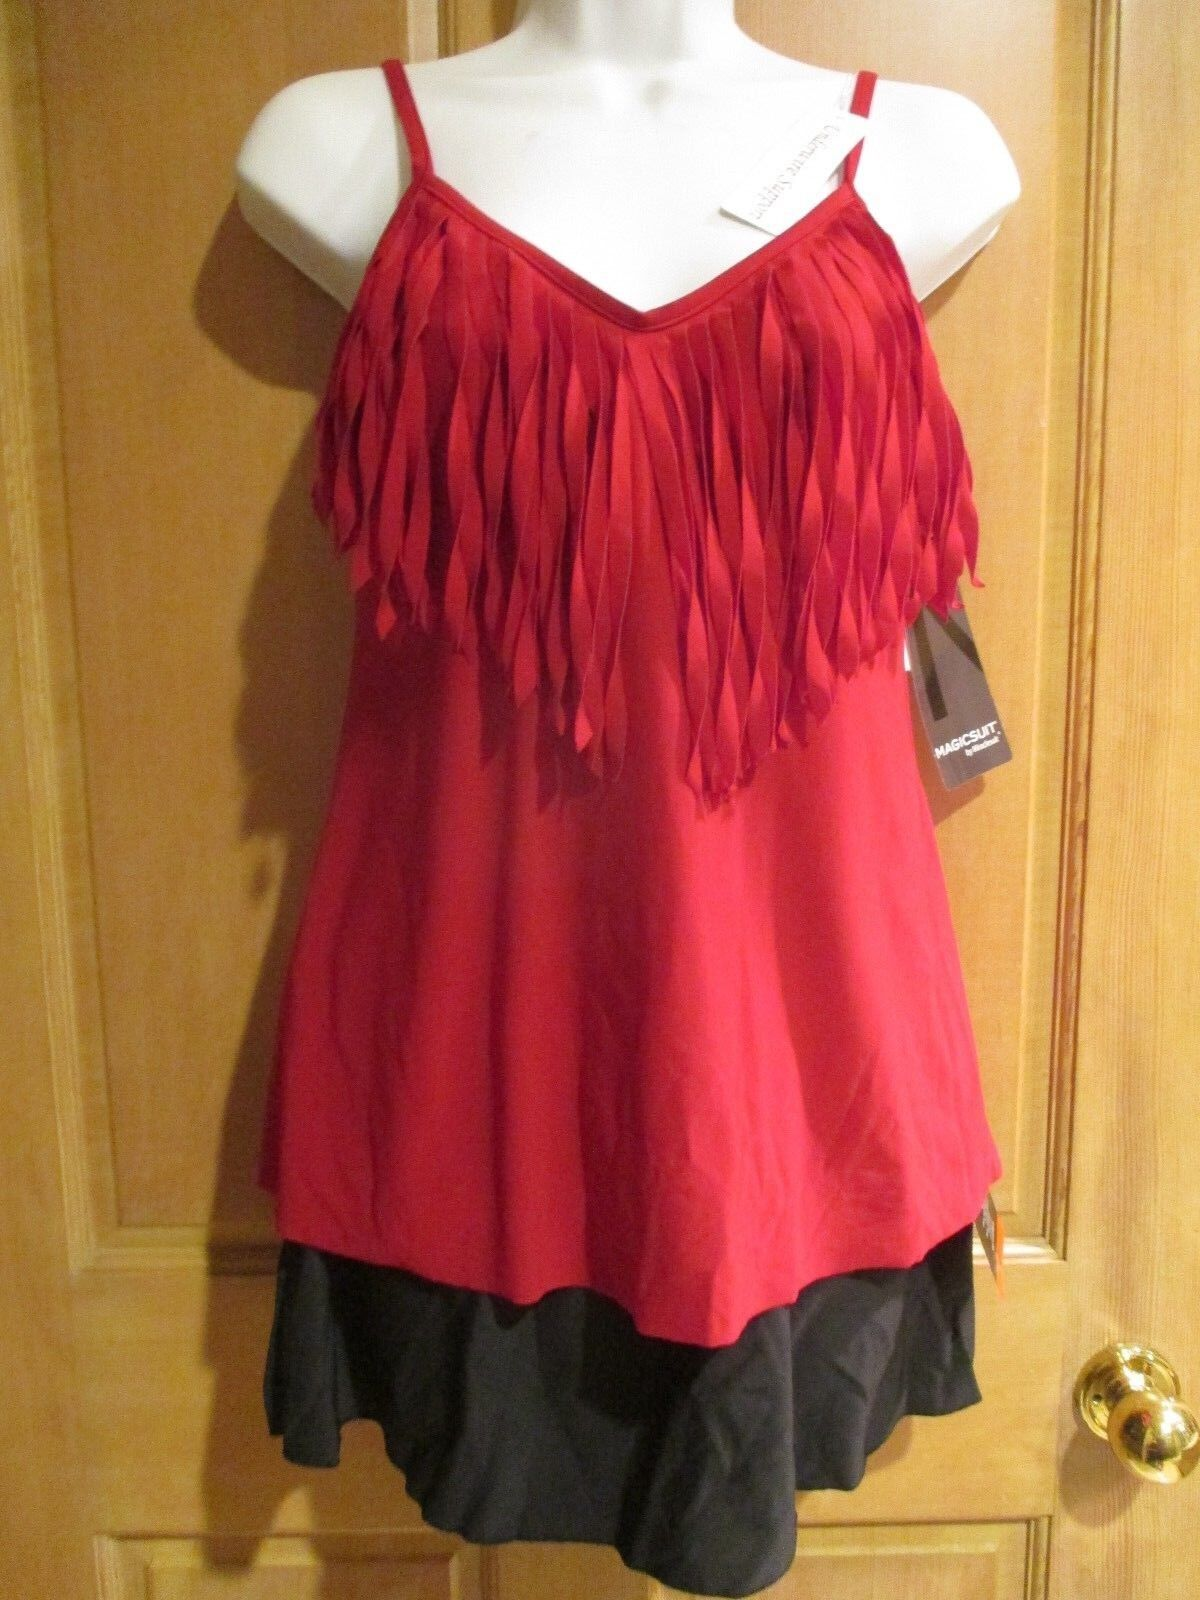 NEW Magicsuit MIRACLESUIT SWIMSUIT 8 2 Piece TANKINI JACLYN Fringe Red Skirt